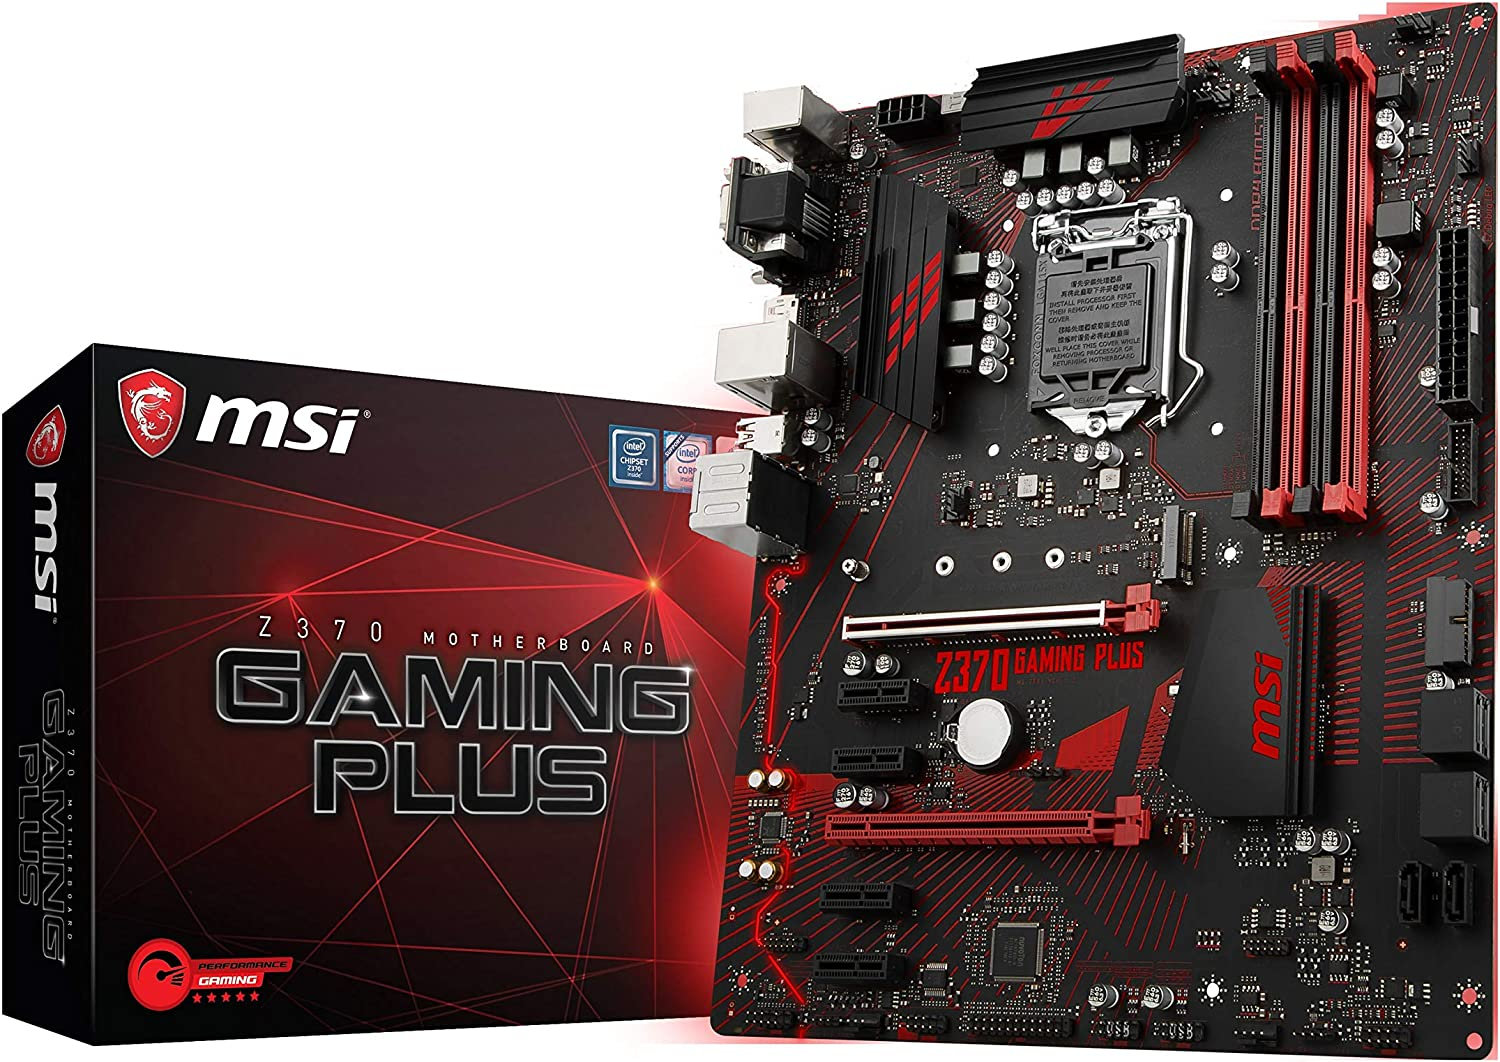 MSI Performance GAMING Intel 8th Gen LGA 1151 M.2 D-Sub DVI DP USB 3.0 Gigabit LAN CFX ATX Motherboard (Z370 GAMING PLUS)